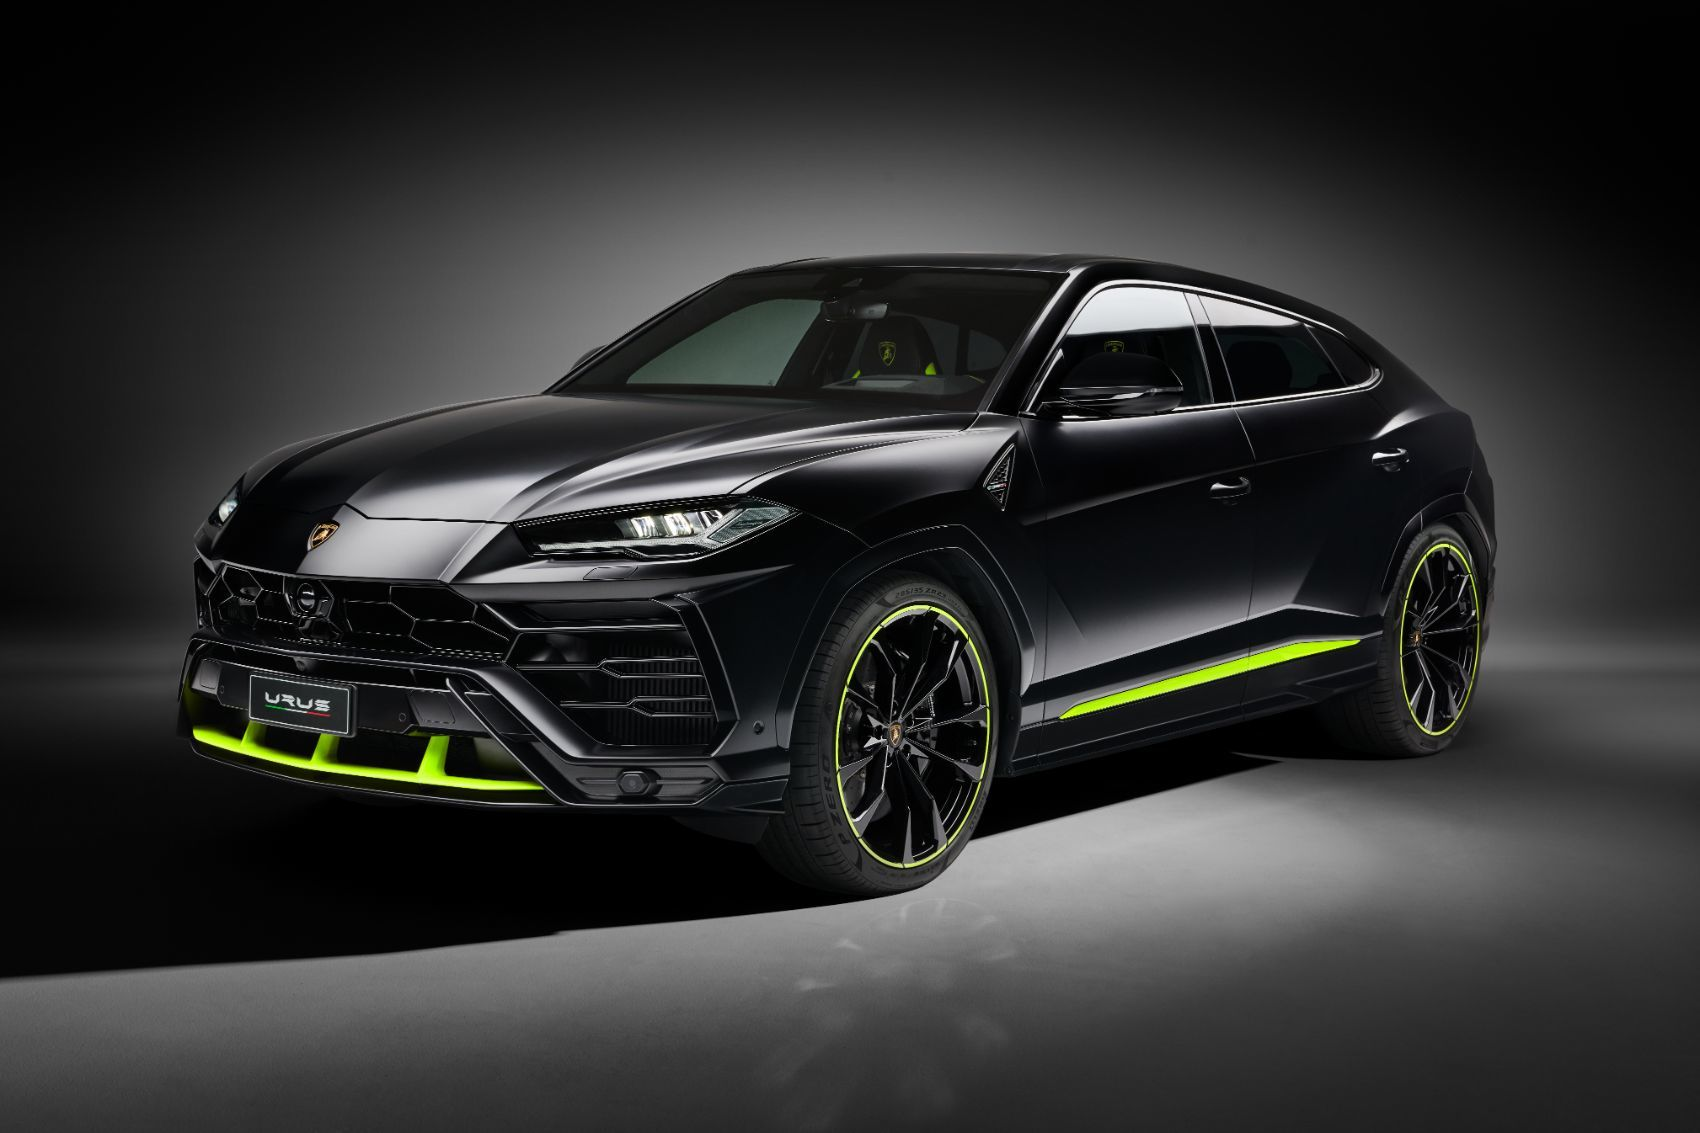 Enjoy This Gallery of The New Lamborghini Urus Graphite Capsule